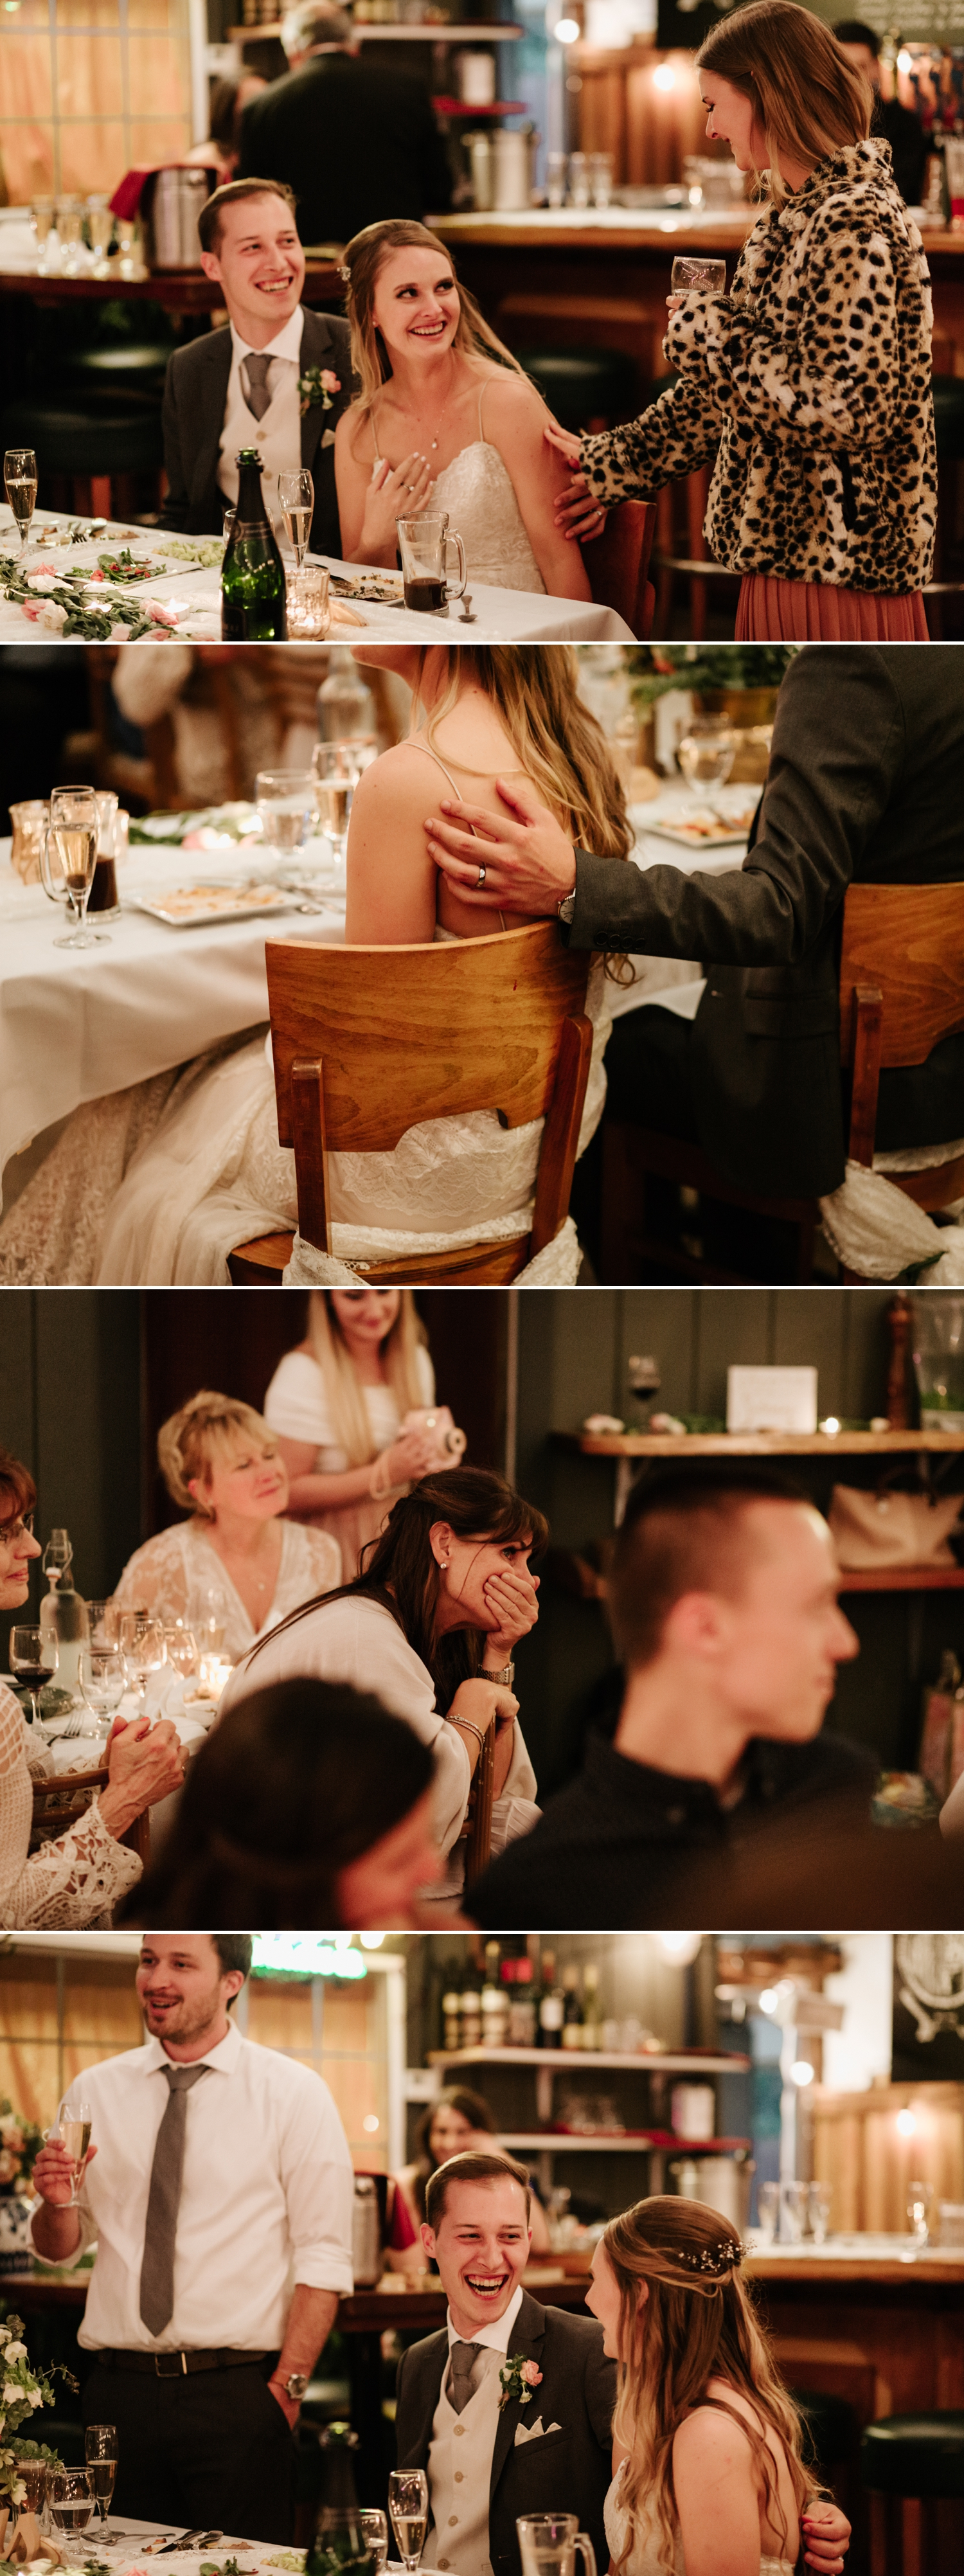 Intimate wedding at Casa Nostra in Ben Lomond by Paige Nelson